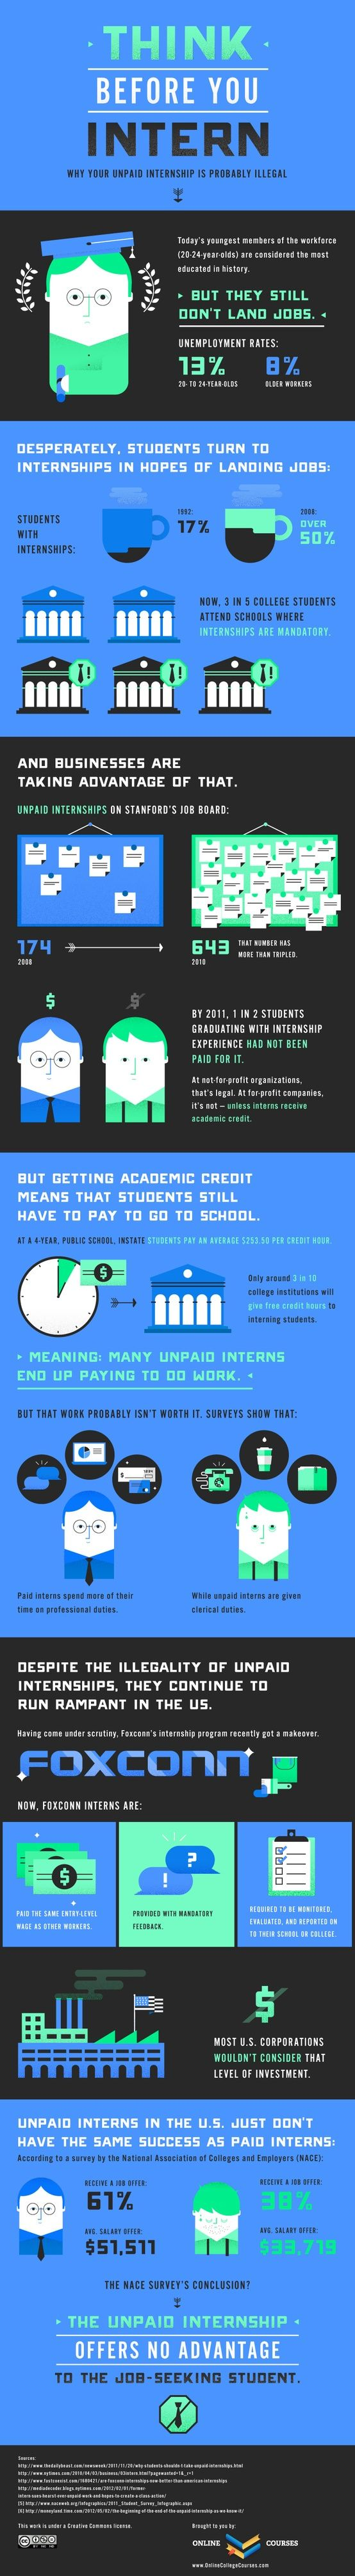 i somewhat agree with this infographic not all unpaid internships will have you only doing